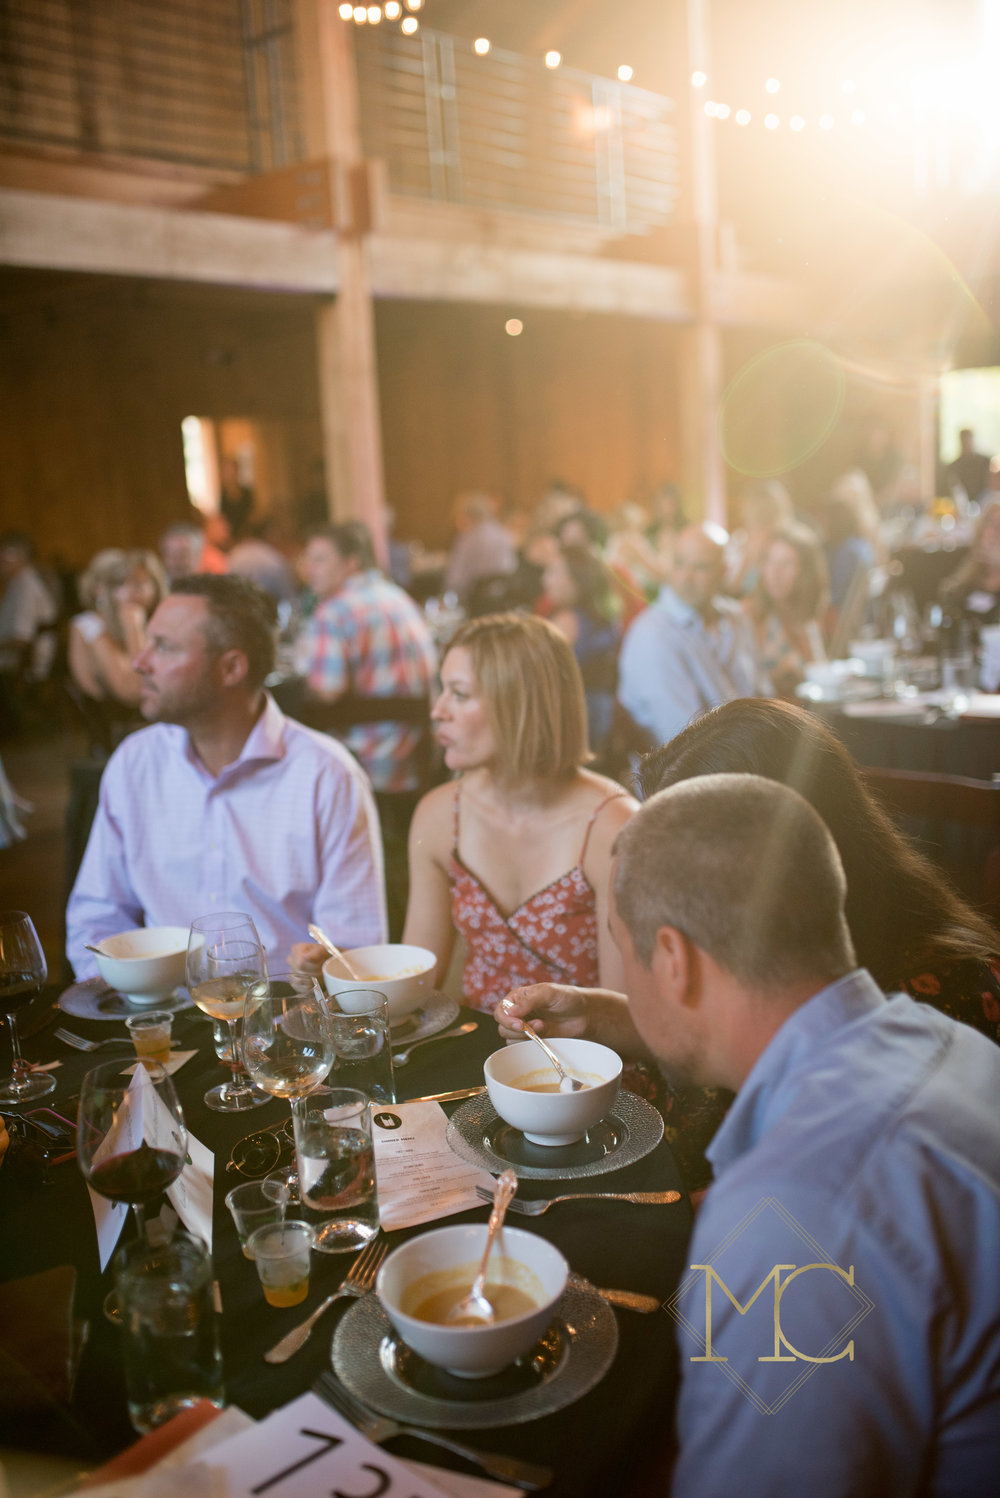 image from multiple sclerosis nashville event of guests seated at table